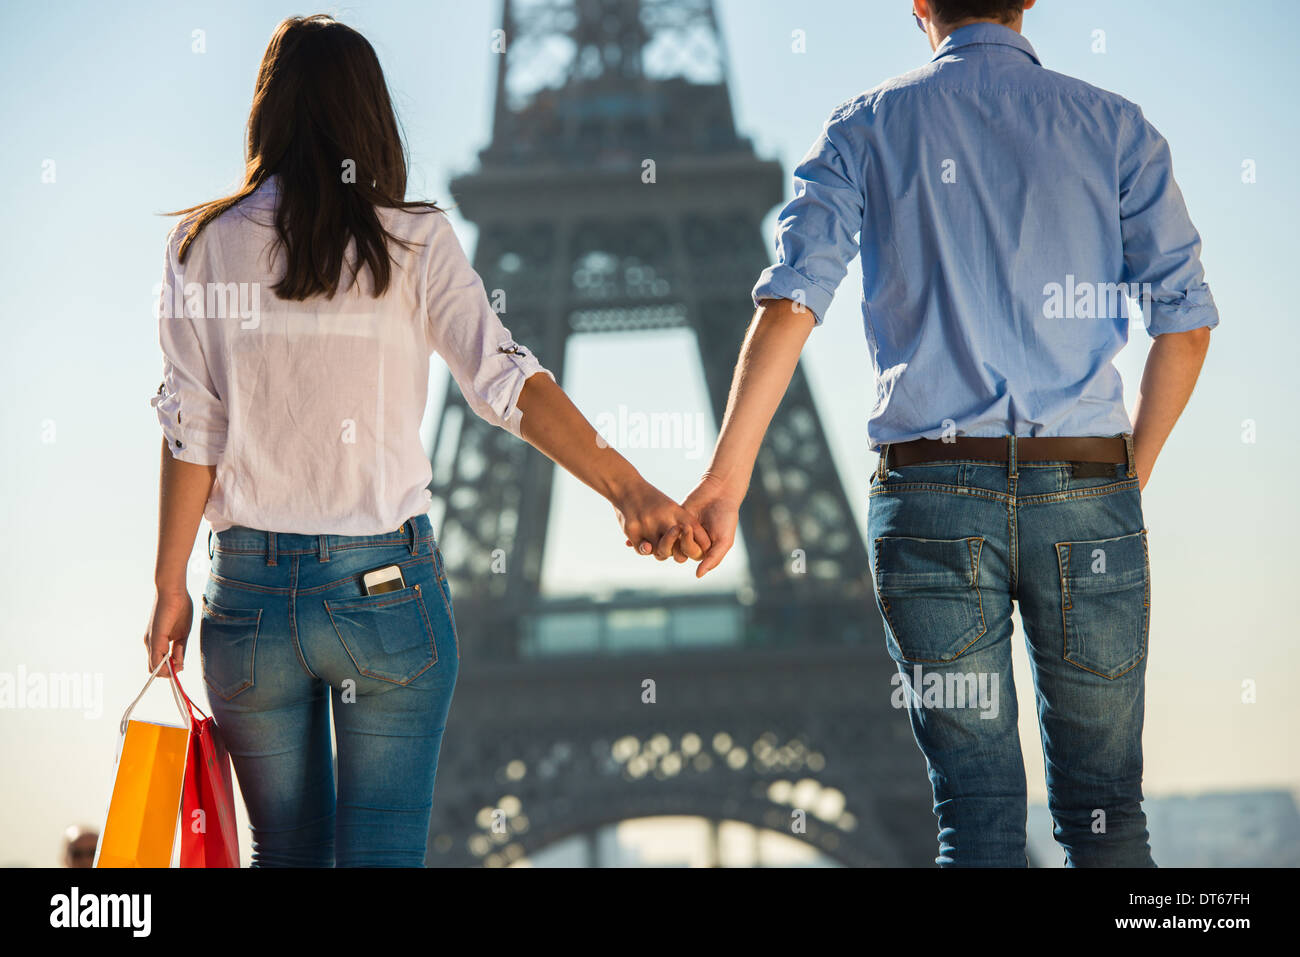 Young couple strolling in front of Eiffel Tower, Paris, France Stock Photo